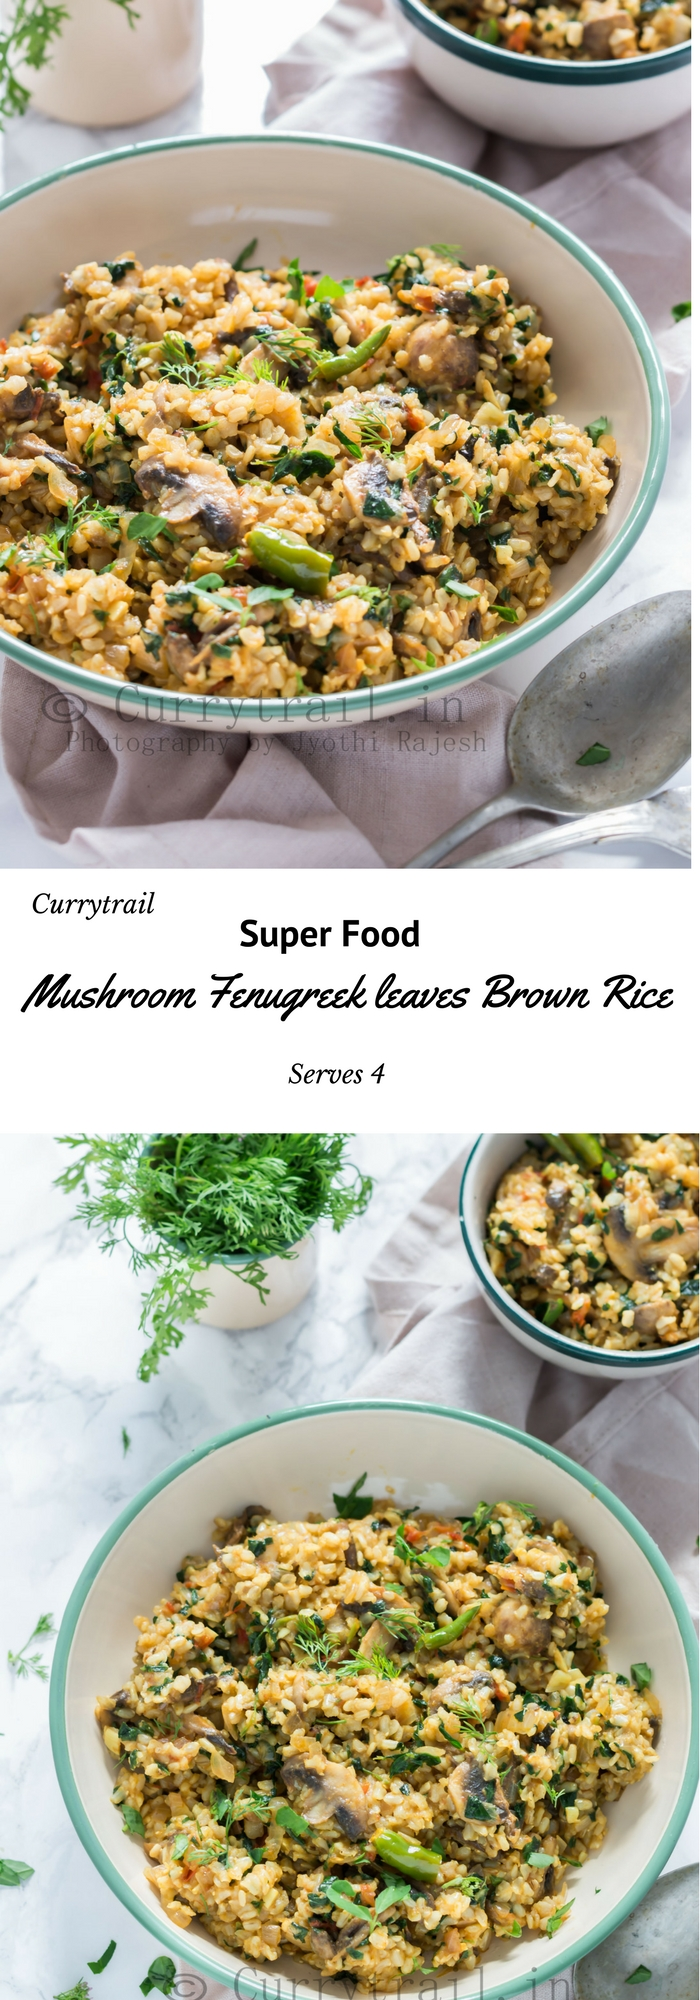 Mushroom Fenugreek Leaves Brown Rice